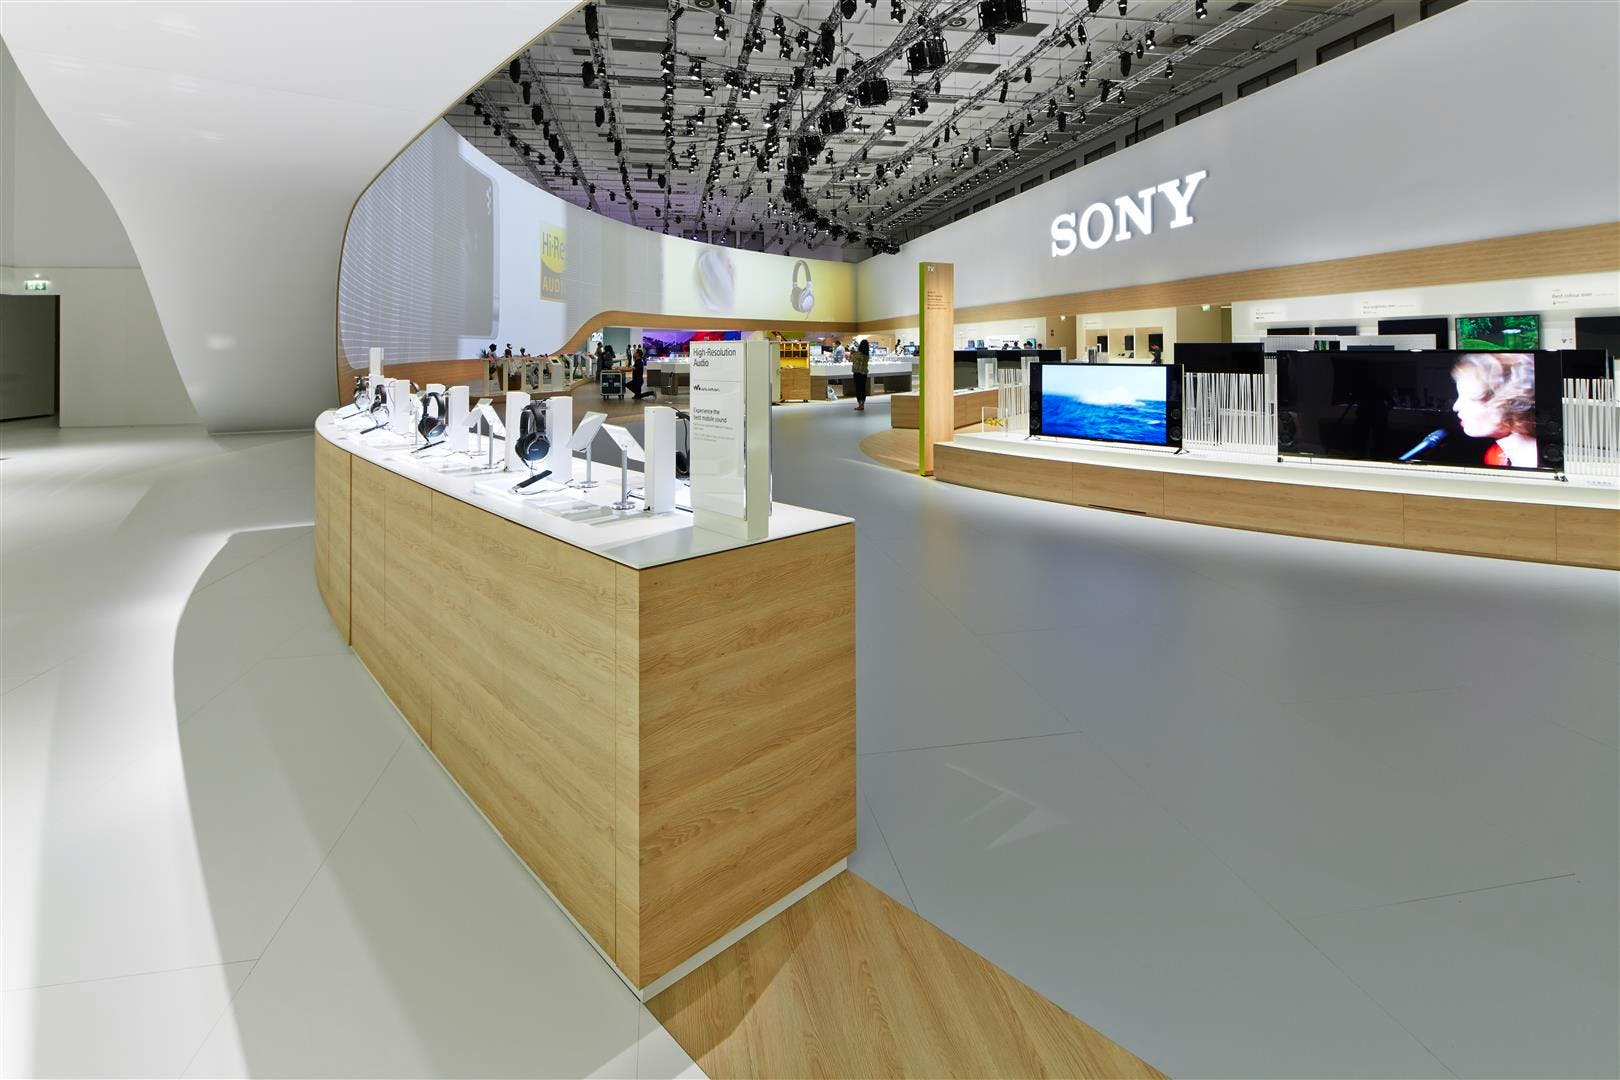 Becker Design sony exhibition stand int egger wood based materials archinect